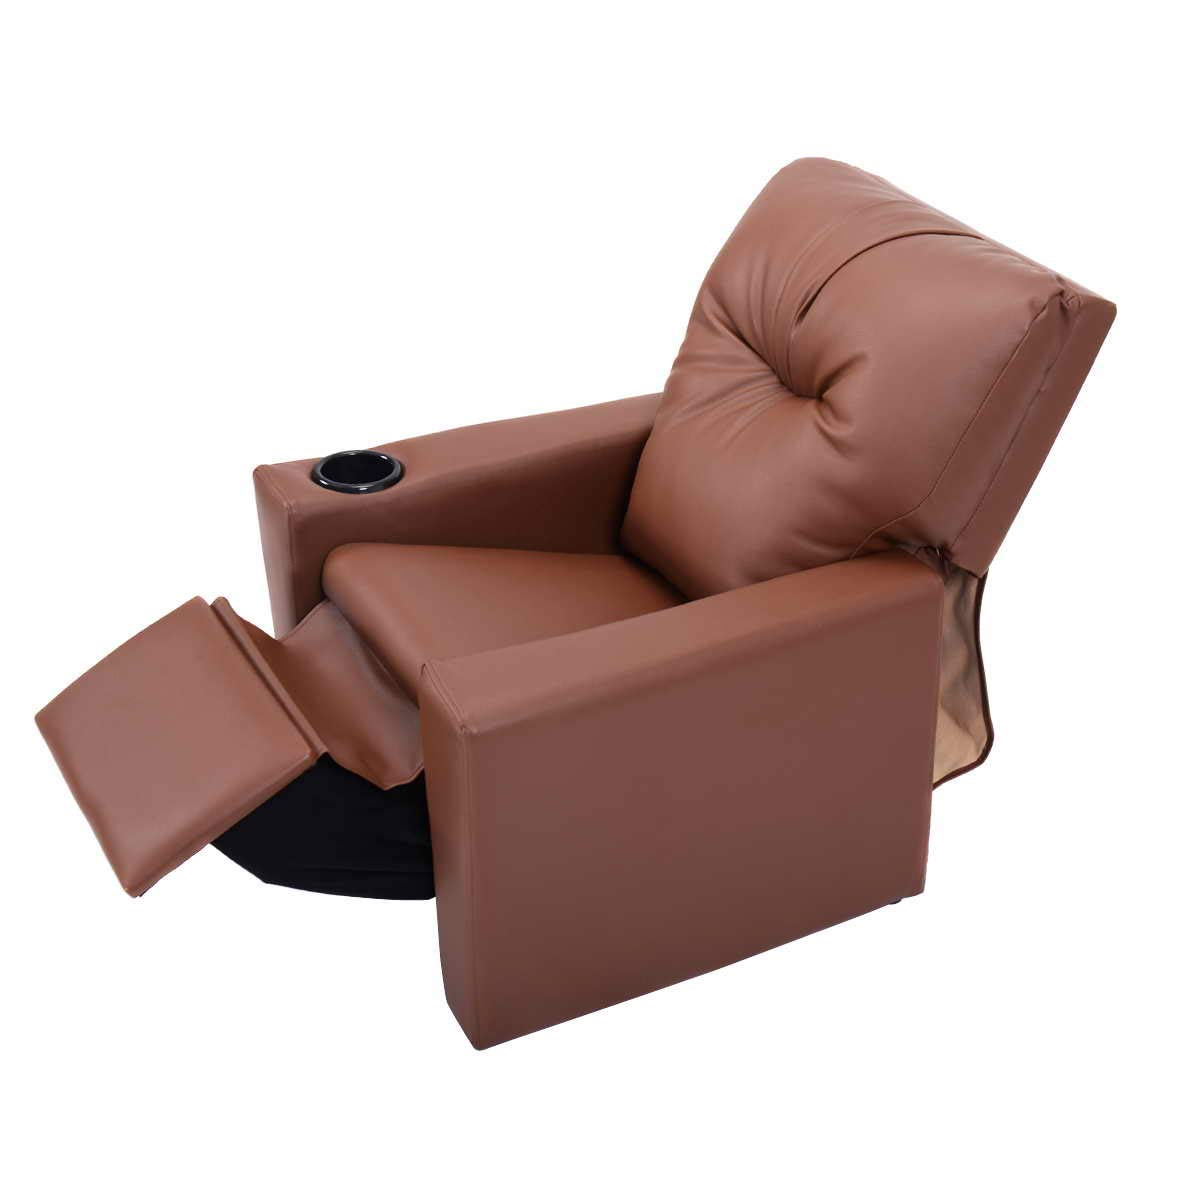 Kids Recliner with Cup Holder Brown Leather Sofa Chair Recliners Chairs for Children by GentleShower